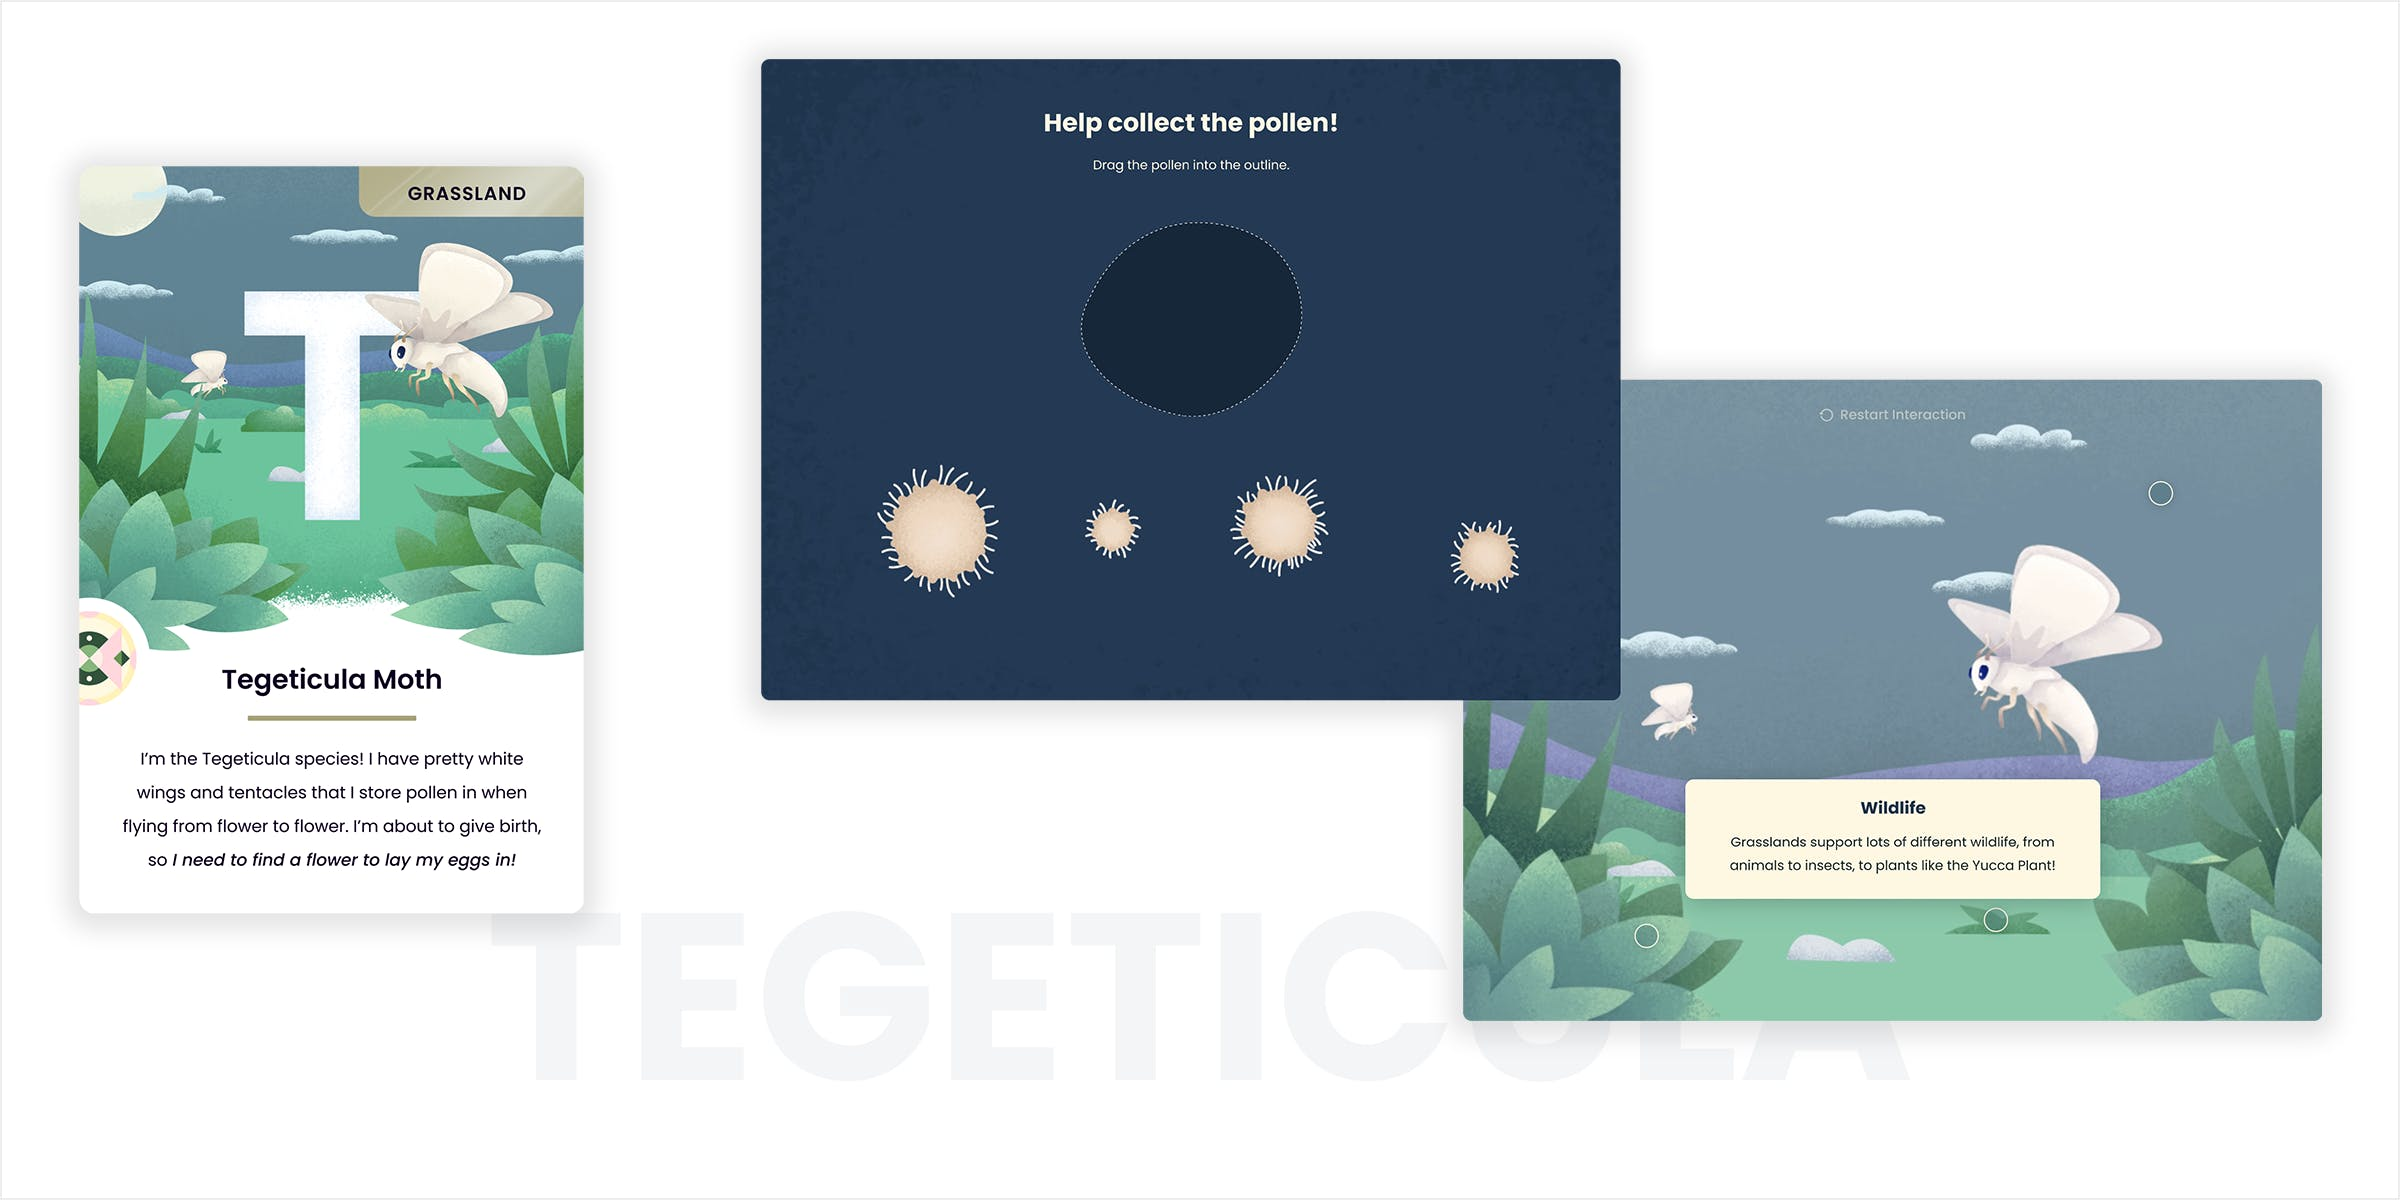 Tegeticula Moth card and interaction screens